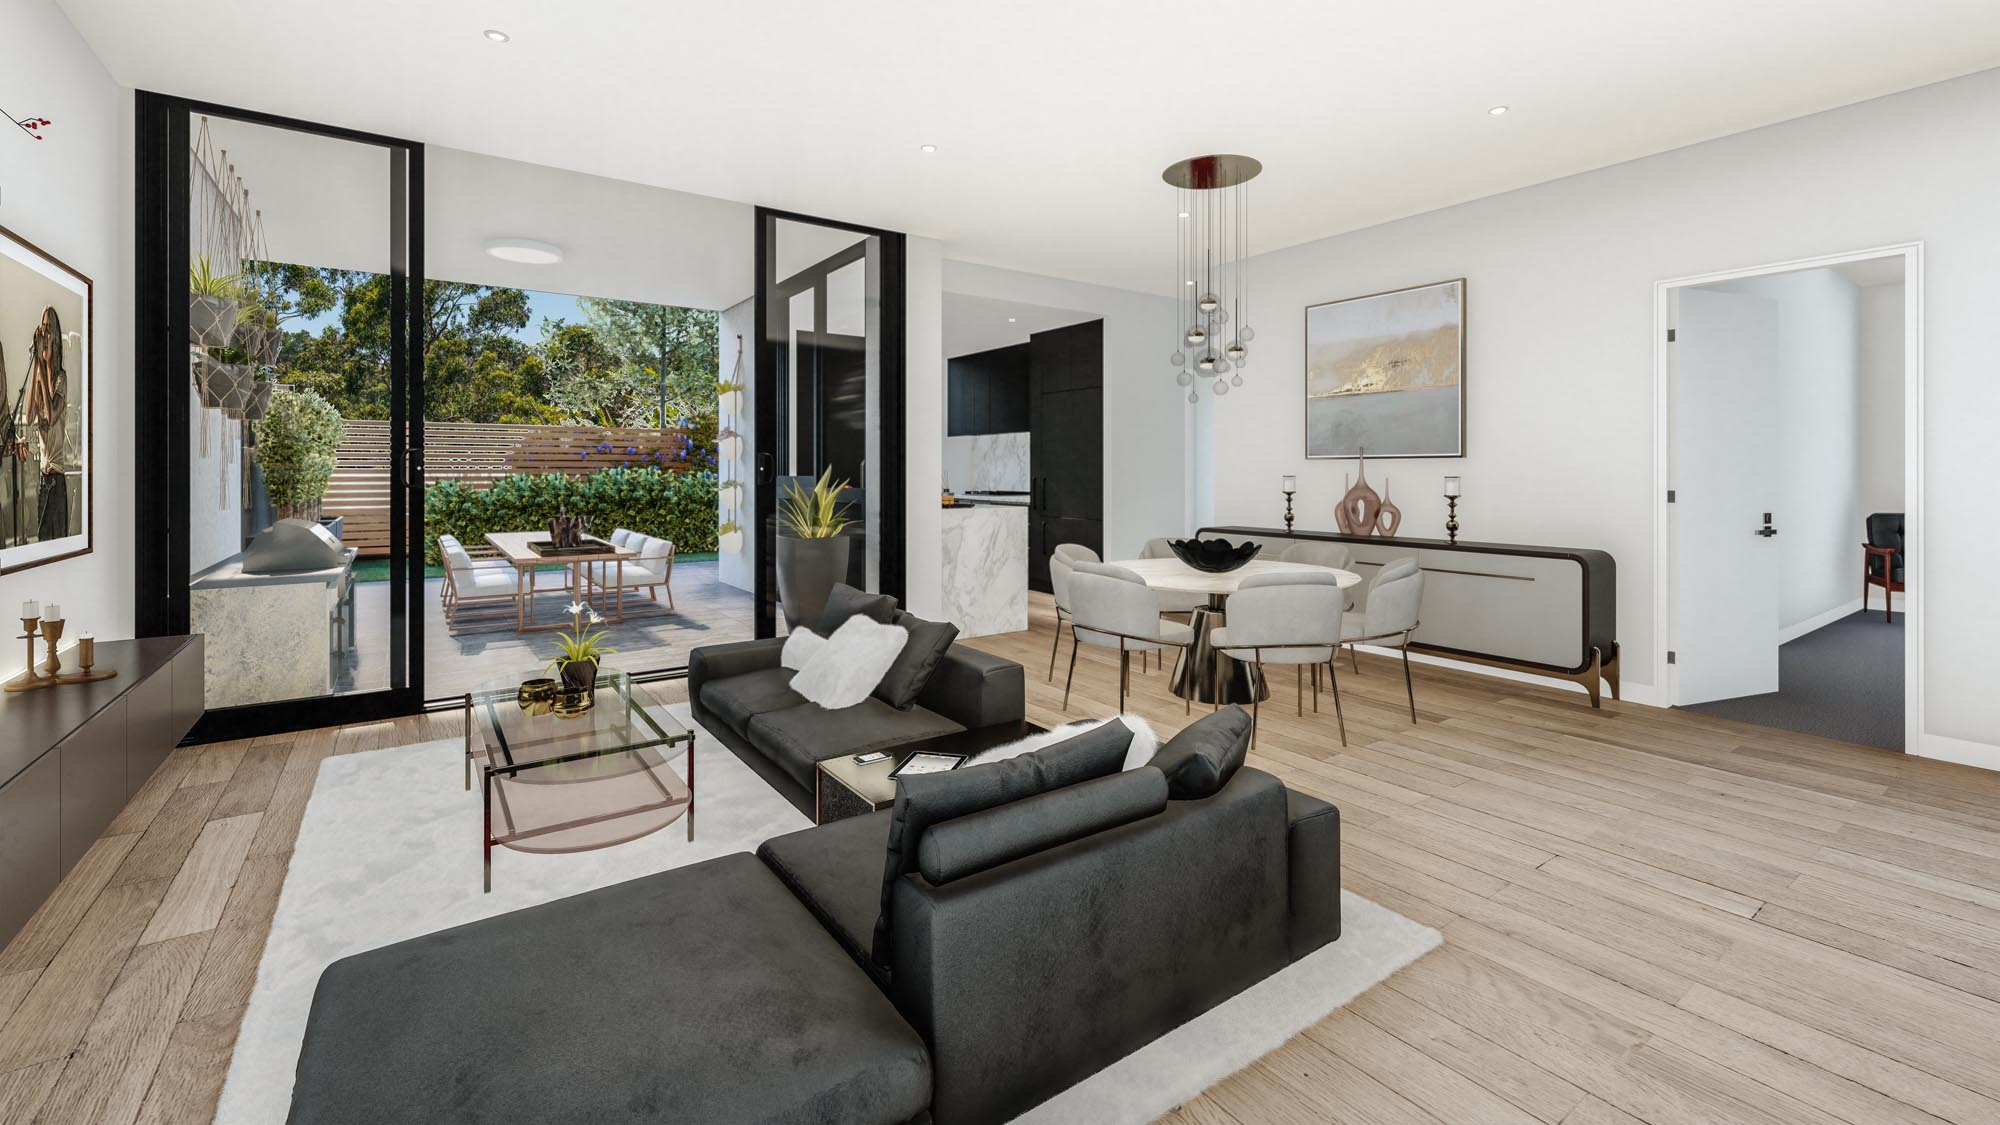 NEW OFF-THE-PLAN APARTMENT STRATEGIES WIN BACK BUYERS